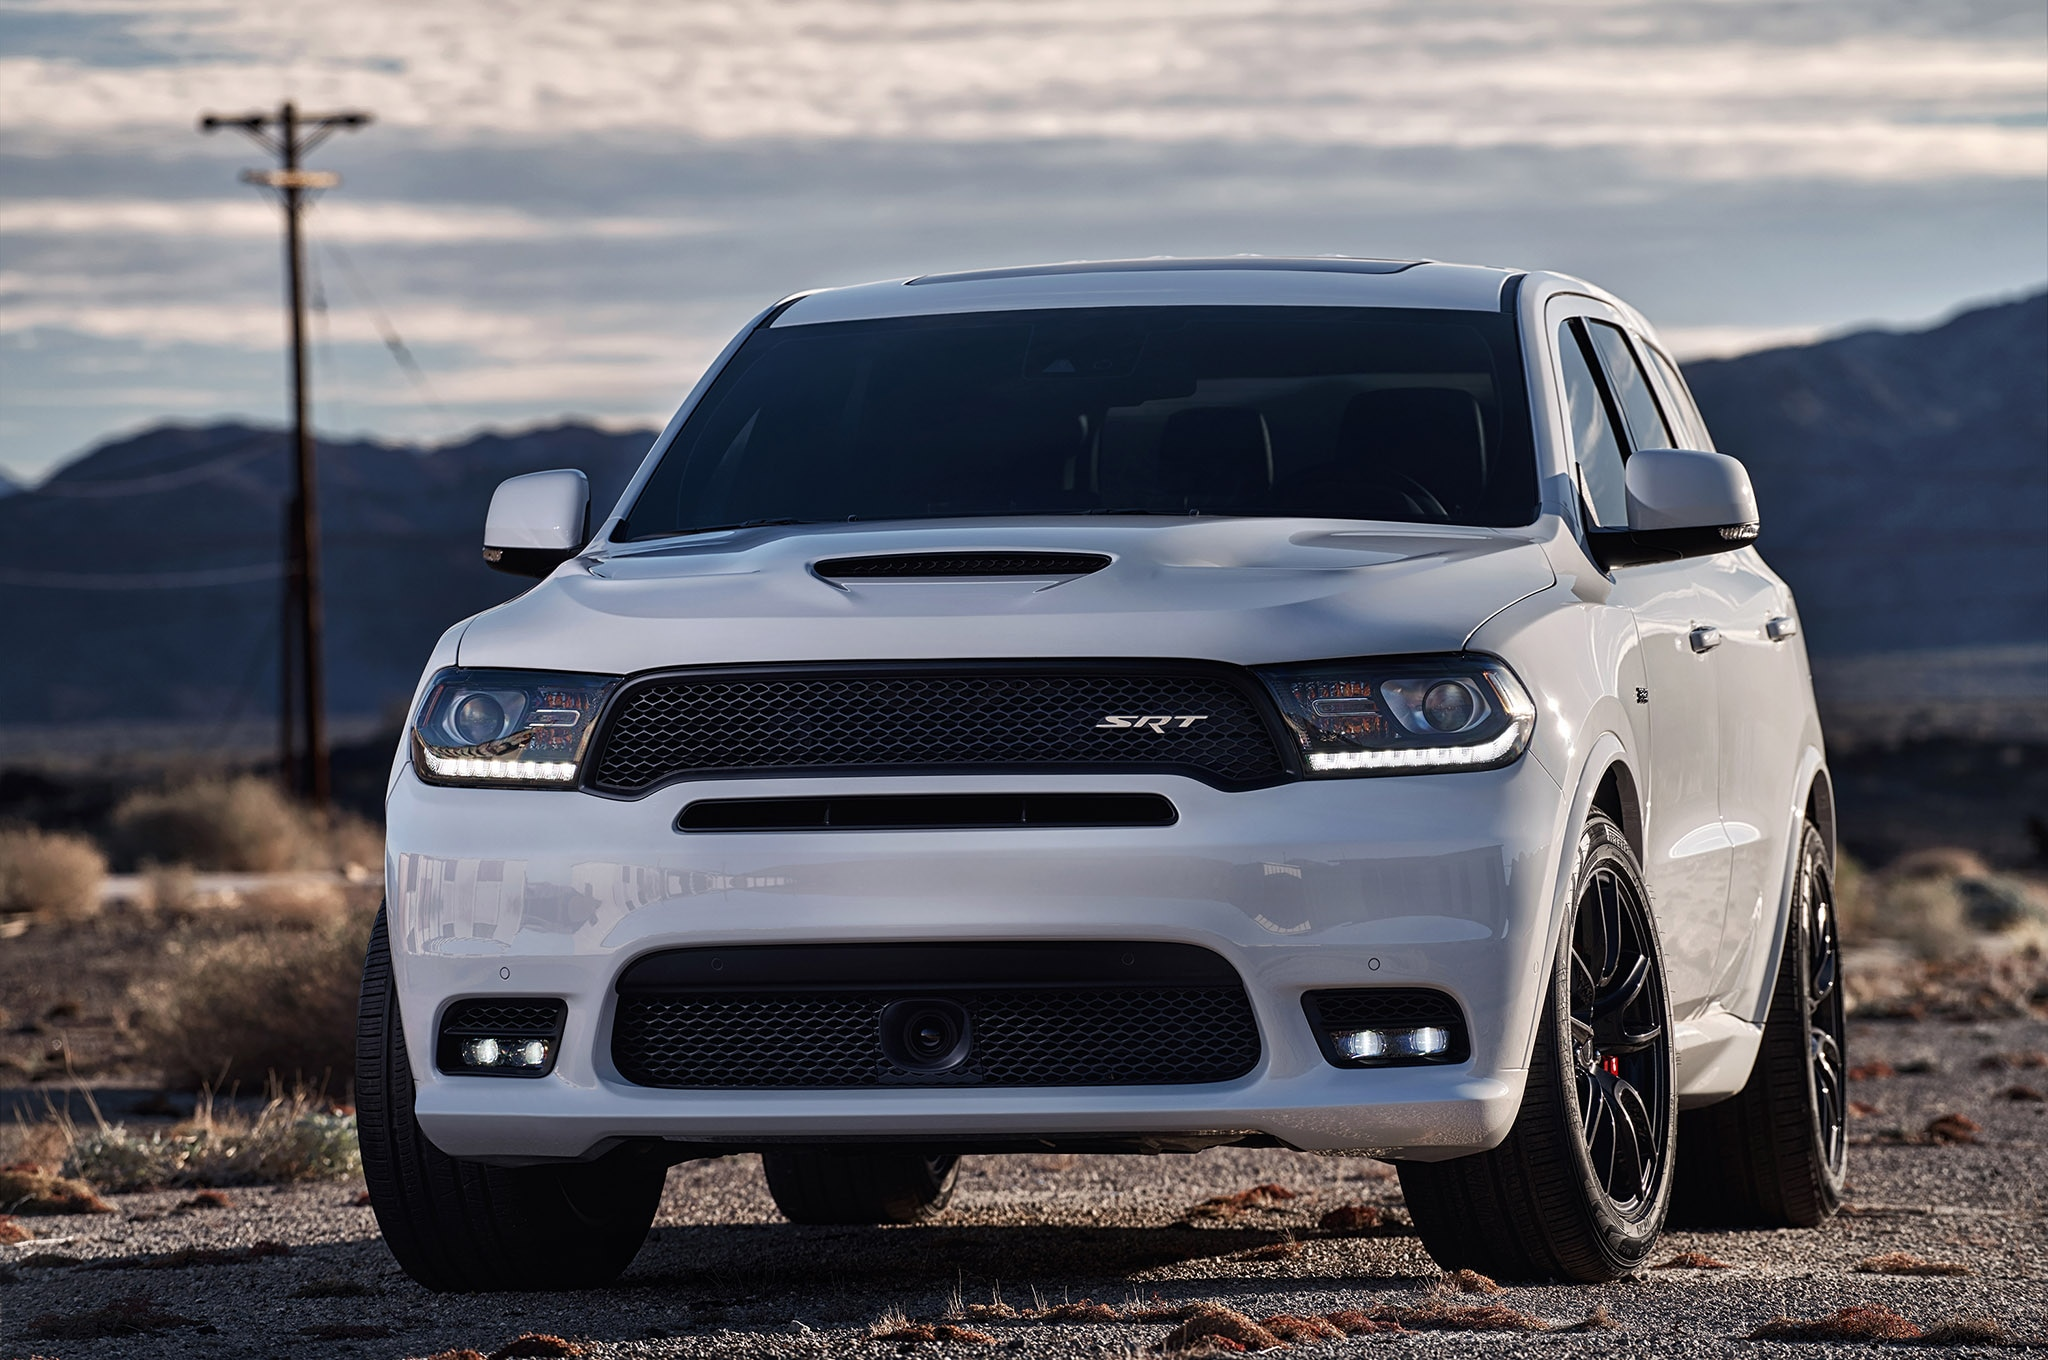 Dodge Durango Srt >> 2018 Dodge Durango SRT Pricing Announced | Automobile Magazine